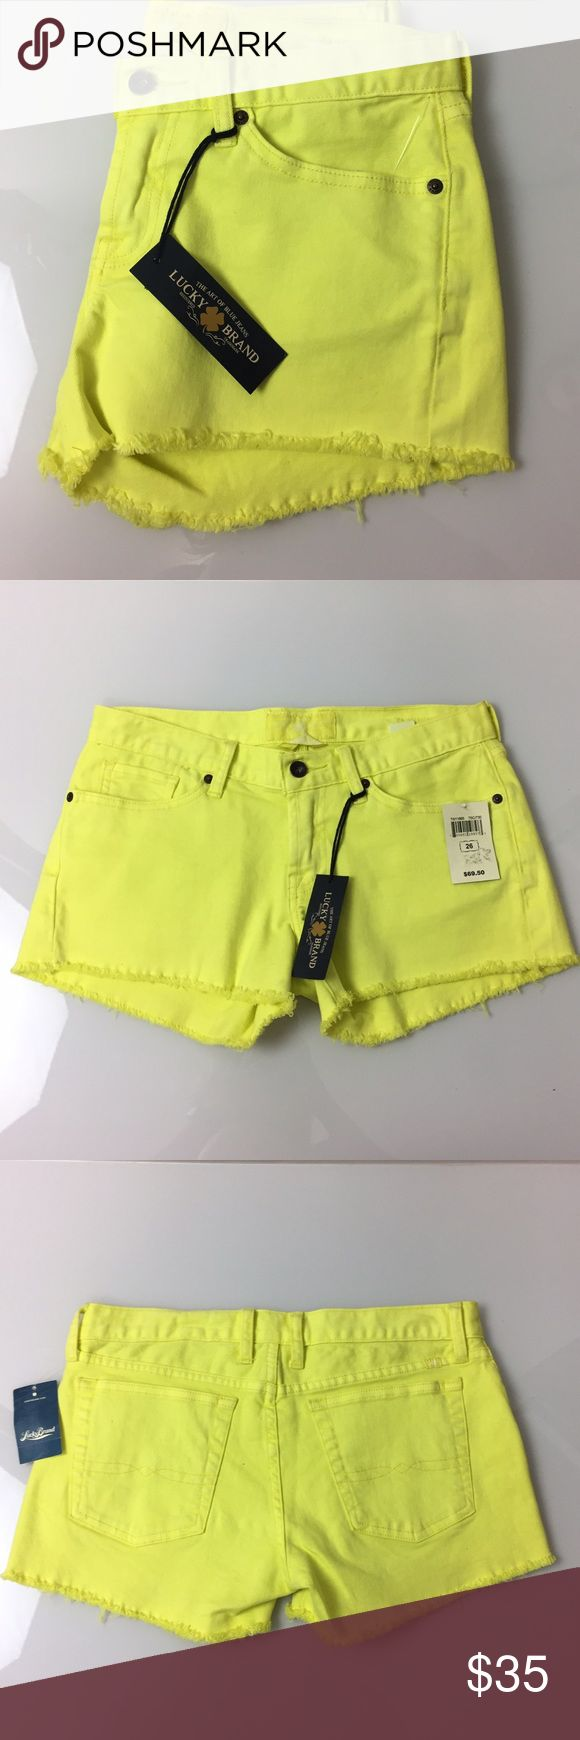 "Lucky Brand Neon Yellow Riley Cut Off Short 26 Bold color for your wardrobe! 32"" waist, 8"" Rise, 2.5"" inseam. New with tags.98% cotton, 2% spandex. A1101 Lucky Brand Shorts Jean Shorts"